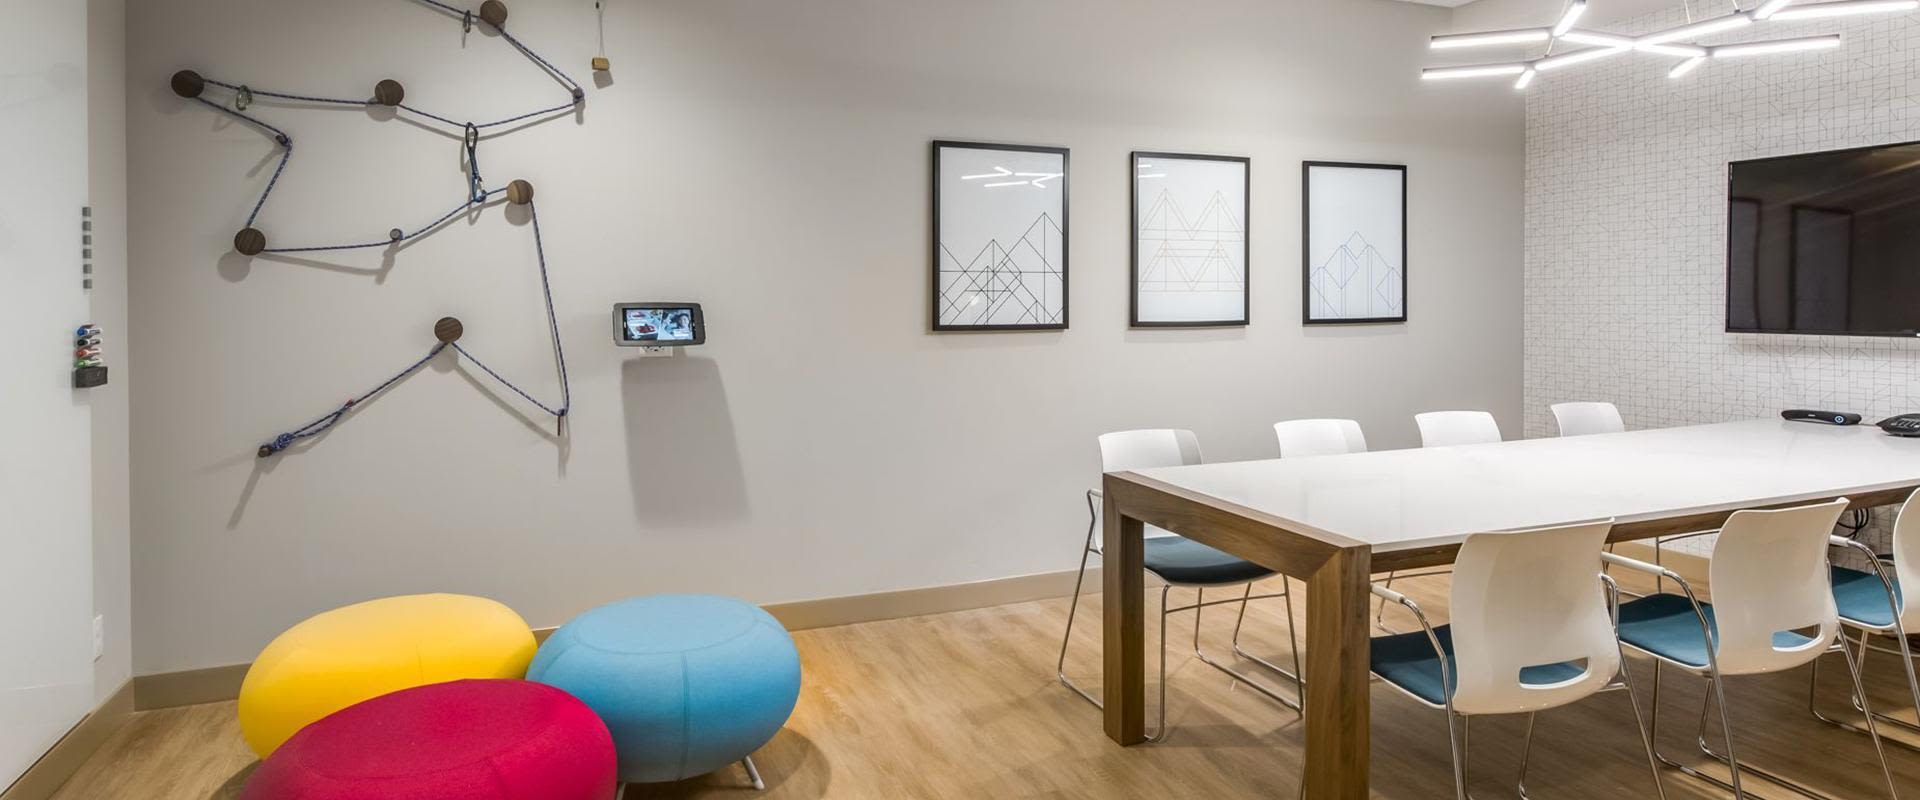 Denver Meeting Room Table And Seating